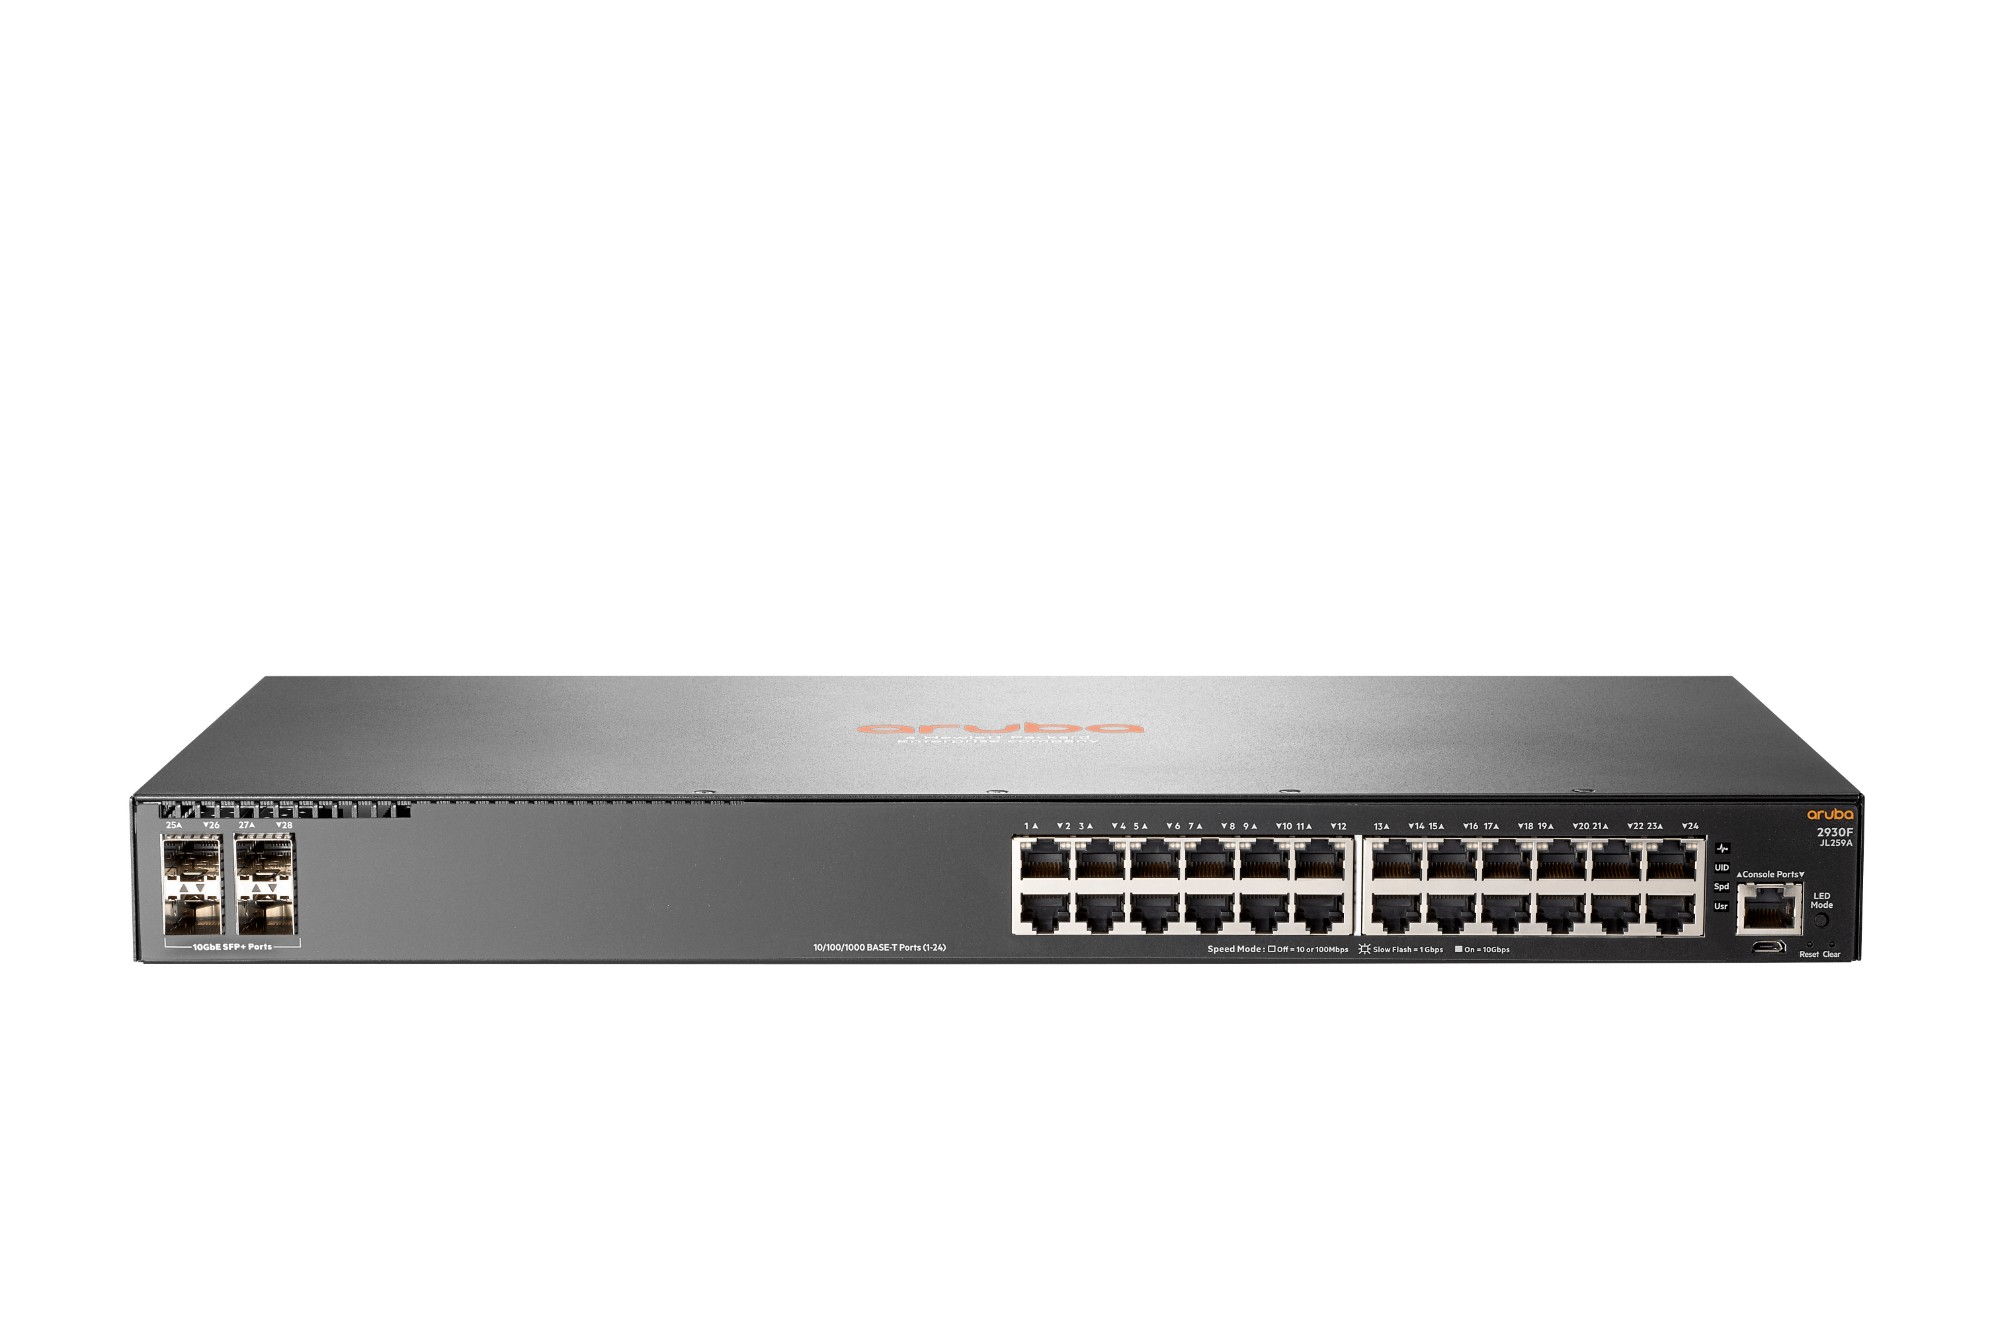 Hewlett Packard Enterprise Aruba 2930F 24G 4SFP Managed L3 Gigabit Ethernet (10/100/1000) Grey 1U